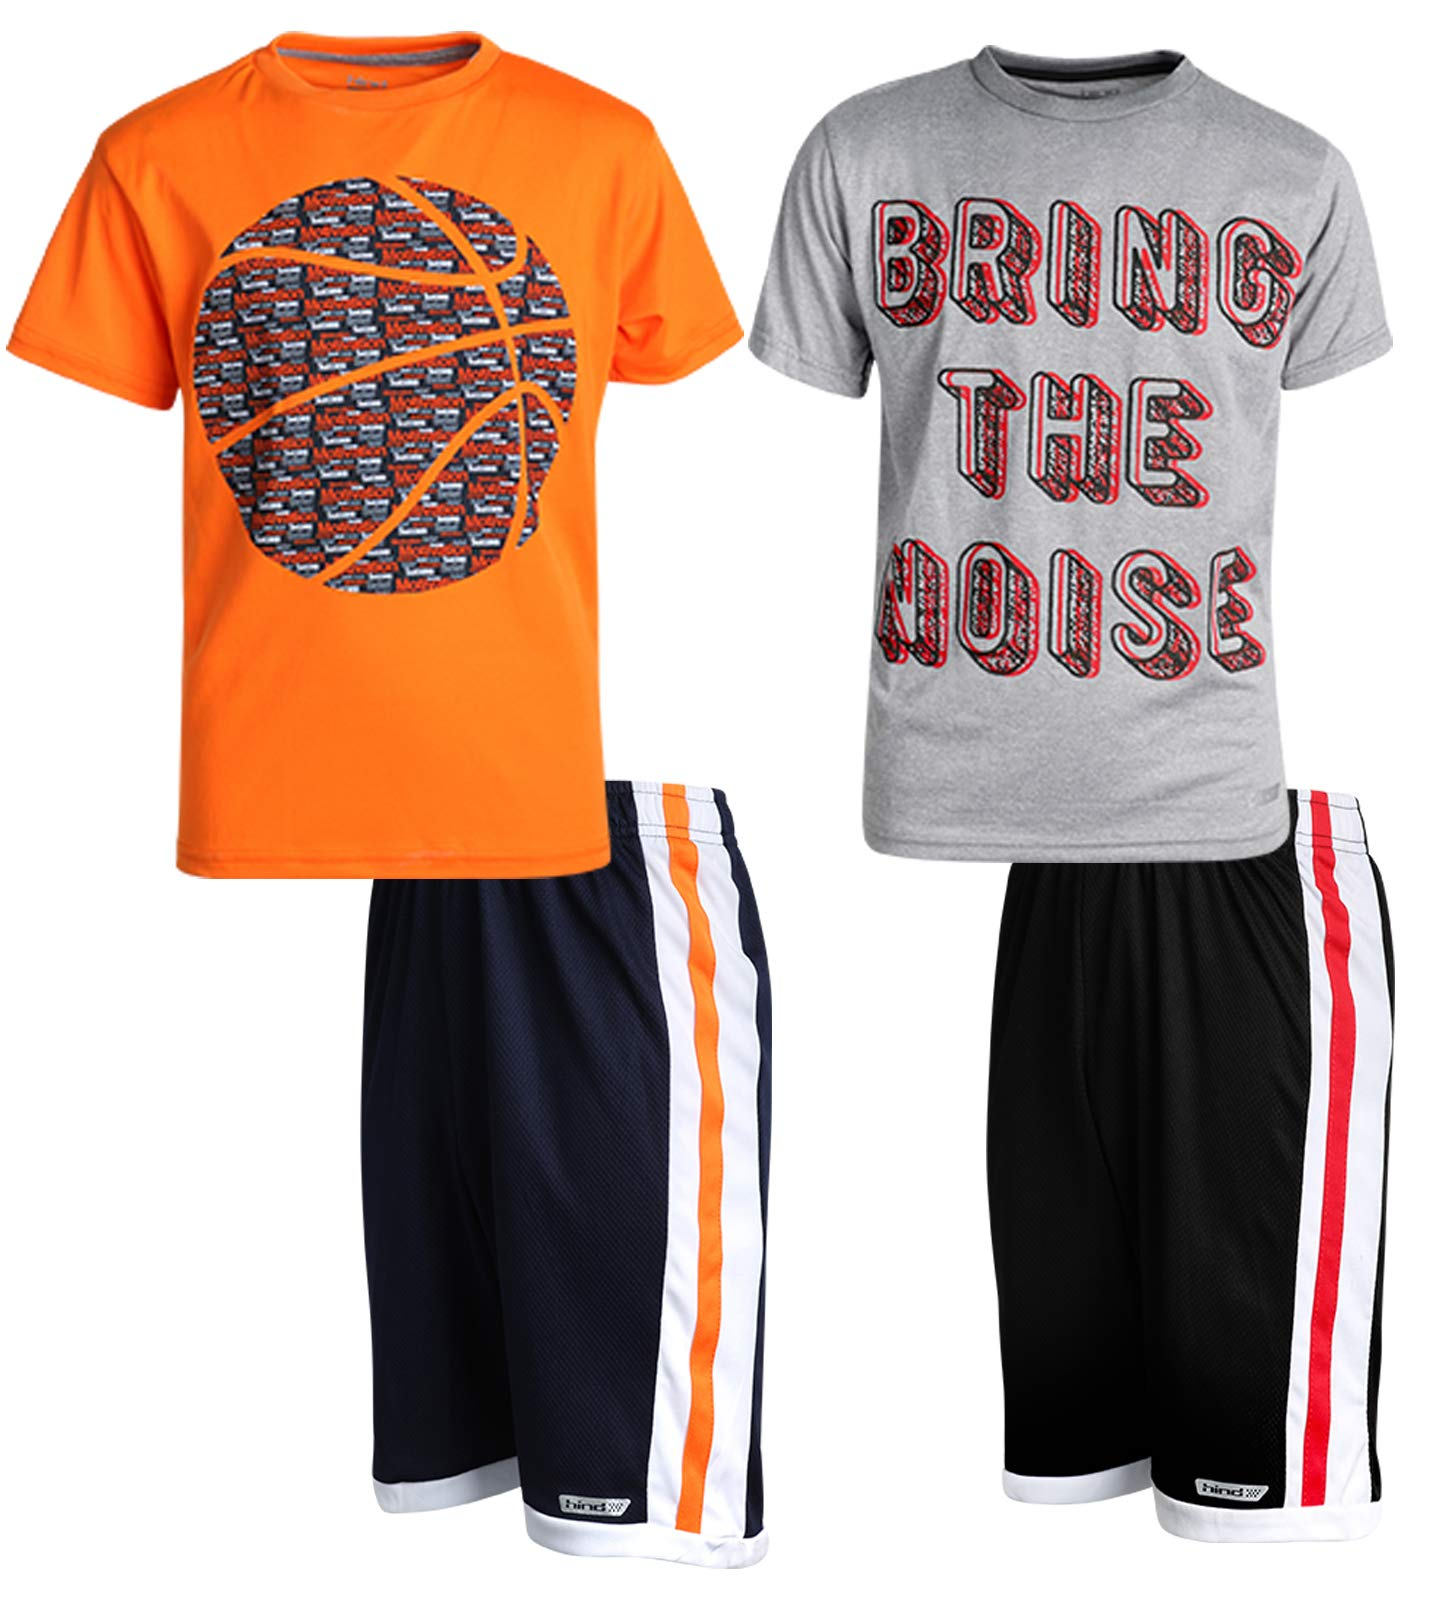 Hind Boys 4-Piece Shirt and Shorts Athletic Outfit Set, Heather Grey/Orange, Size 8'